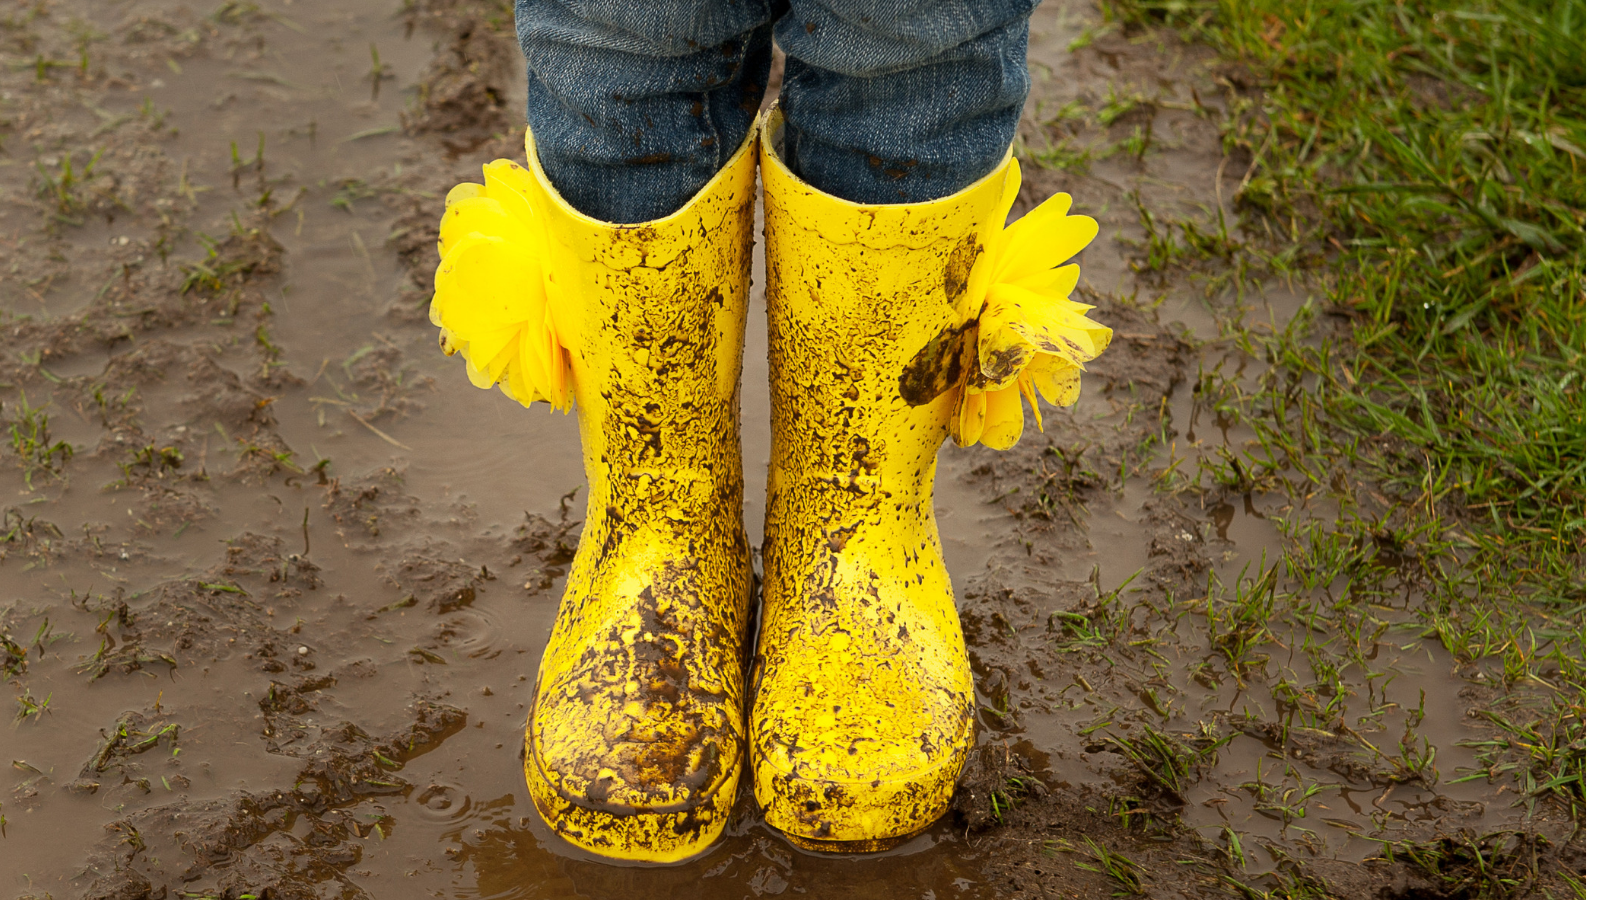 Child's bright boots in muddy puddle indicating resilience